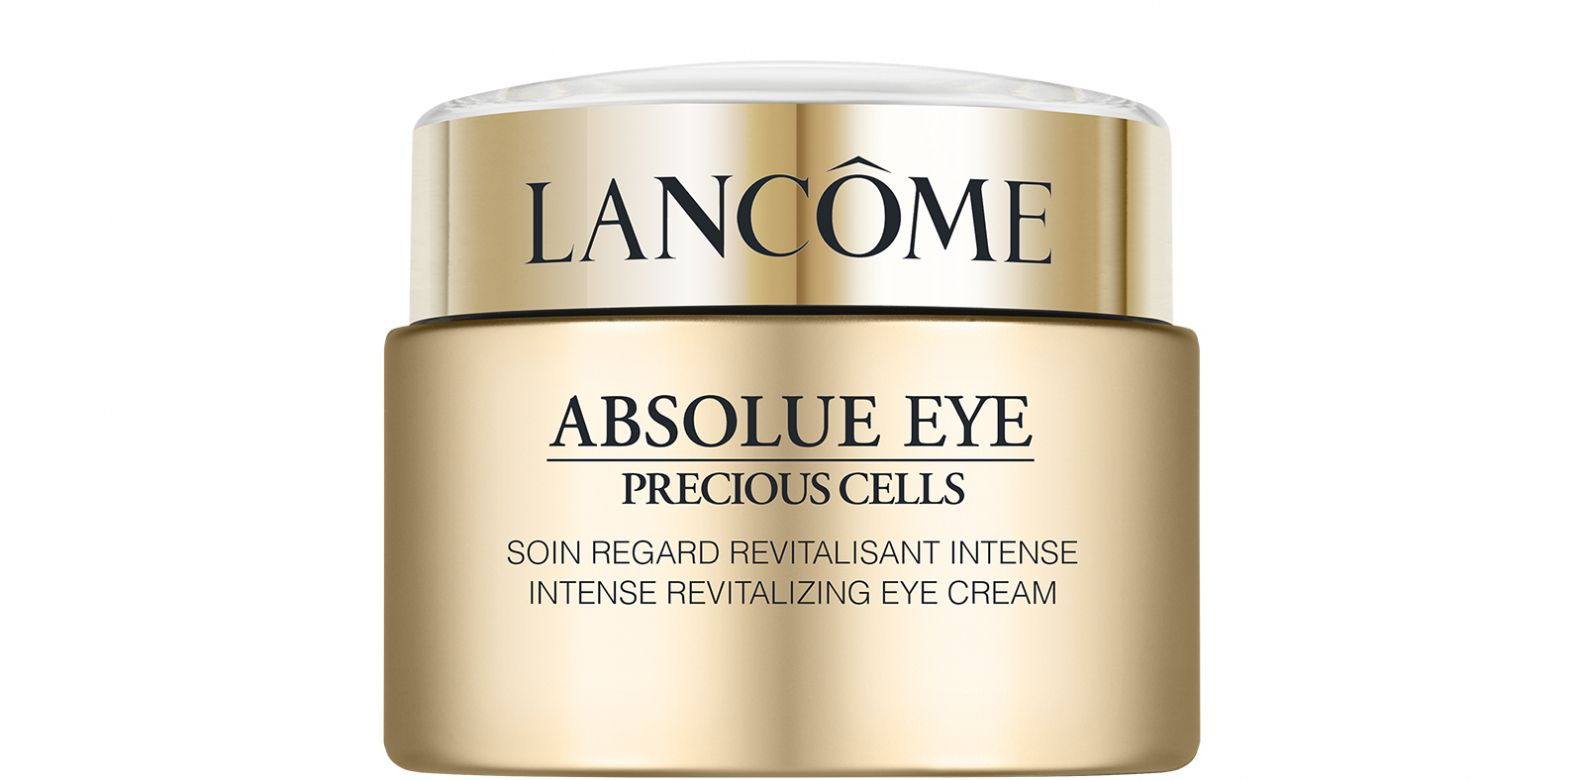 Lancôme Eye Precious Cells Intense Revitializing Eye Cream